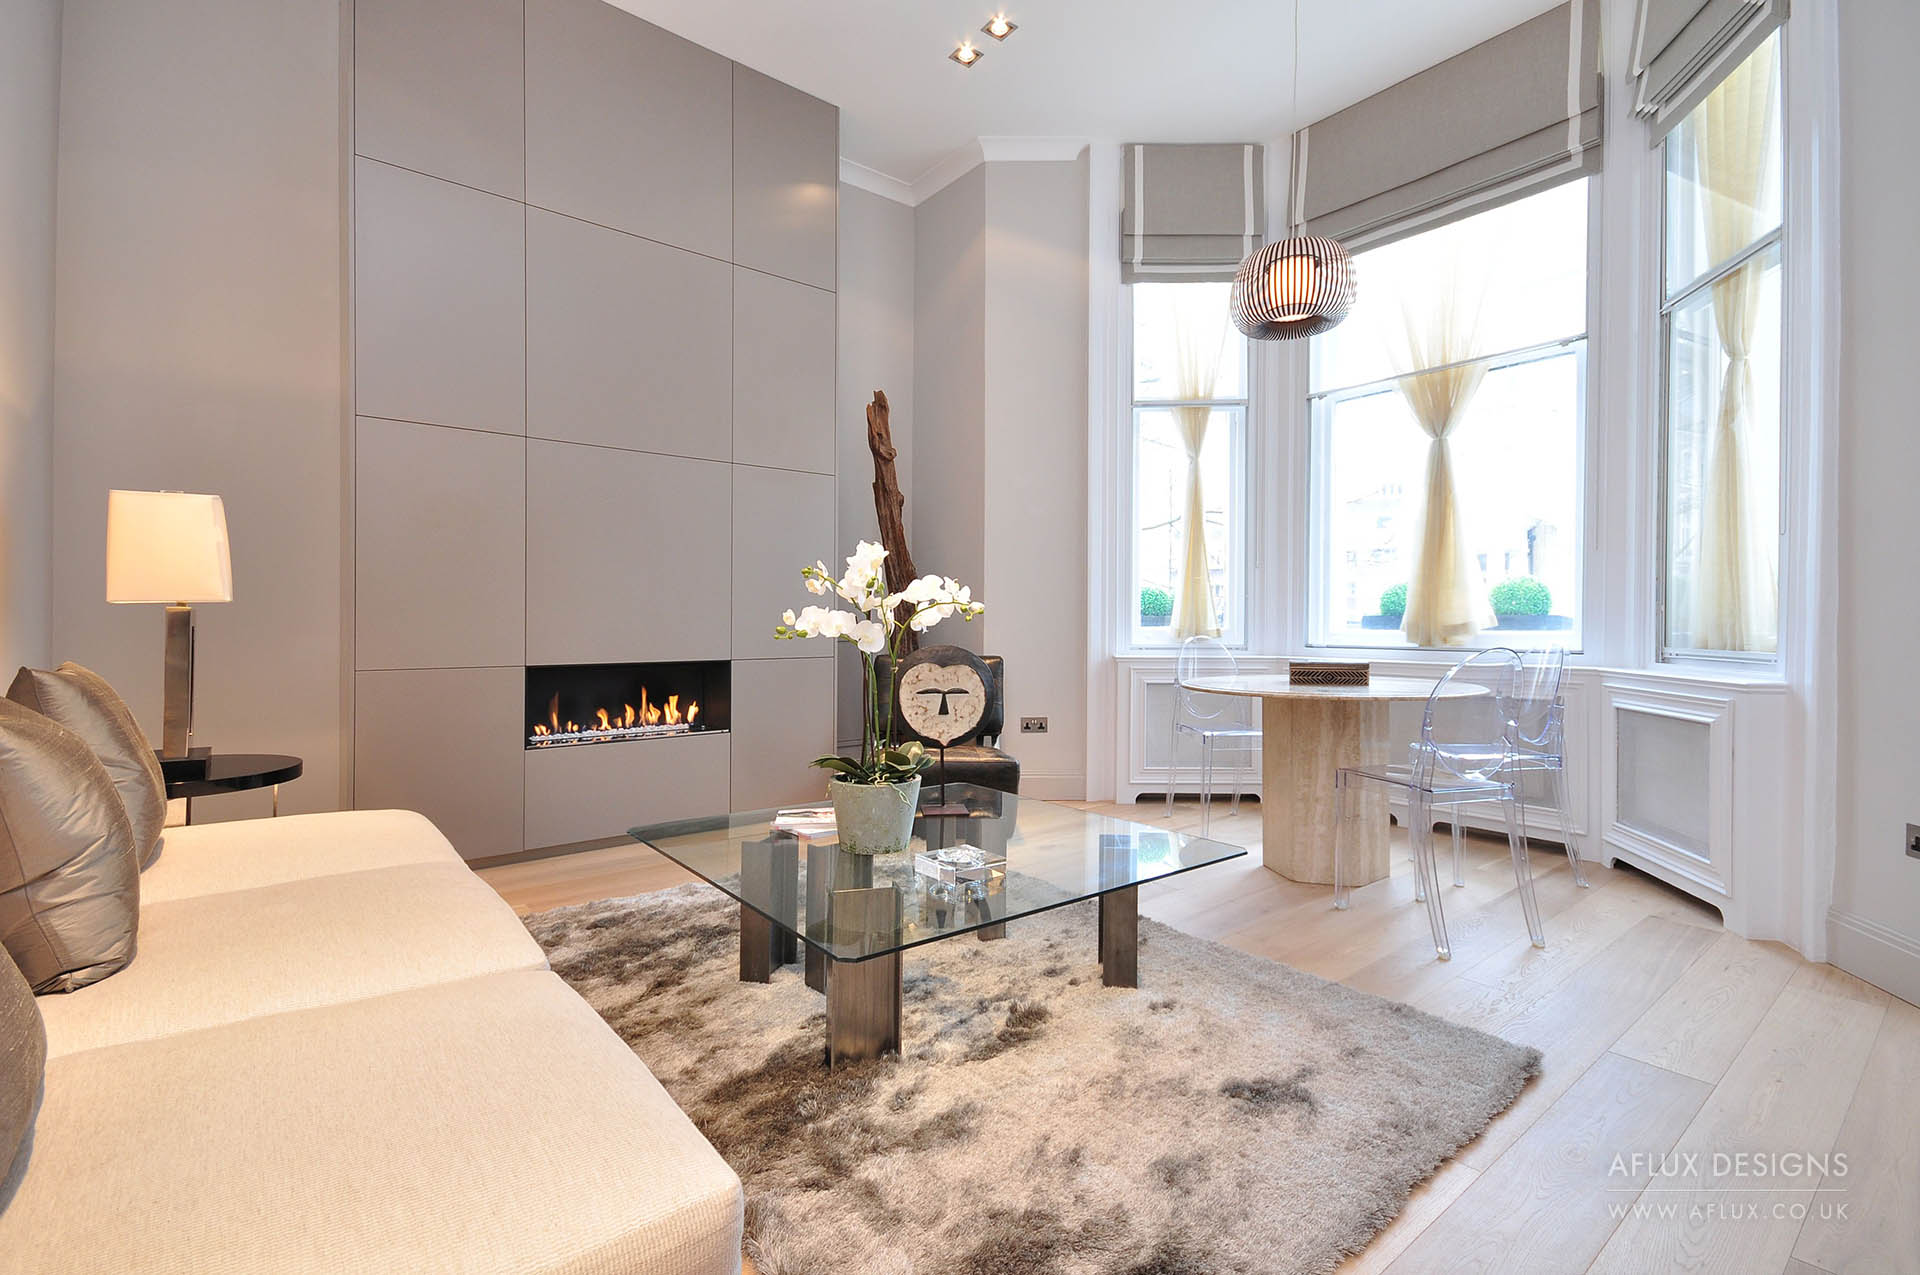 Earls Court - LONDON SW10A beautiful, high ceiling raised ground floor for an elderly couple looking to move back into London as a pied a terre. Key design features were the bespoke gas fire place /chimney stack and the floor to ceiling bedroom wardrobes that we designed to maximise storage.